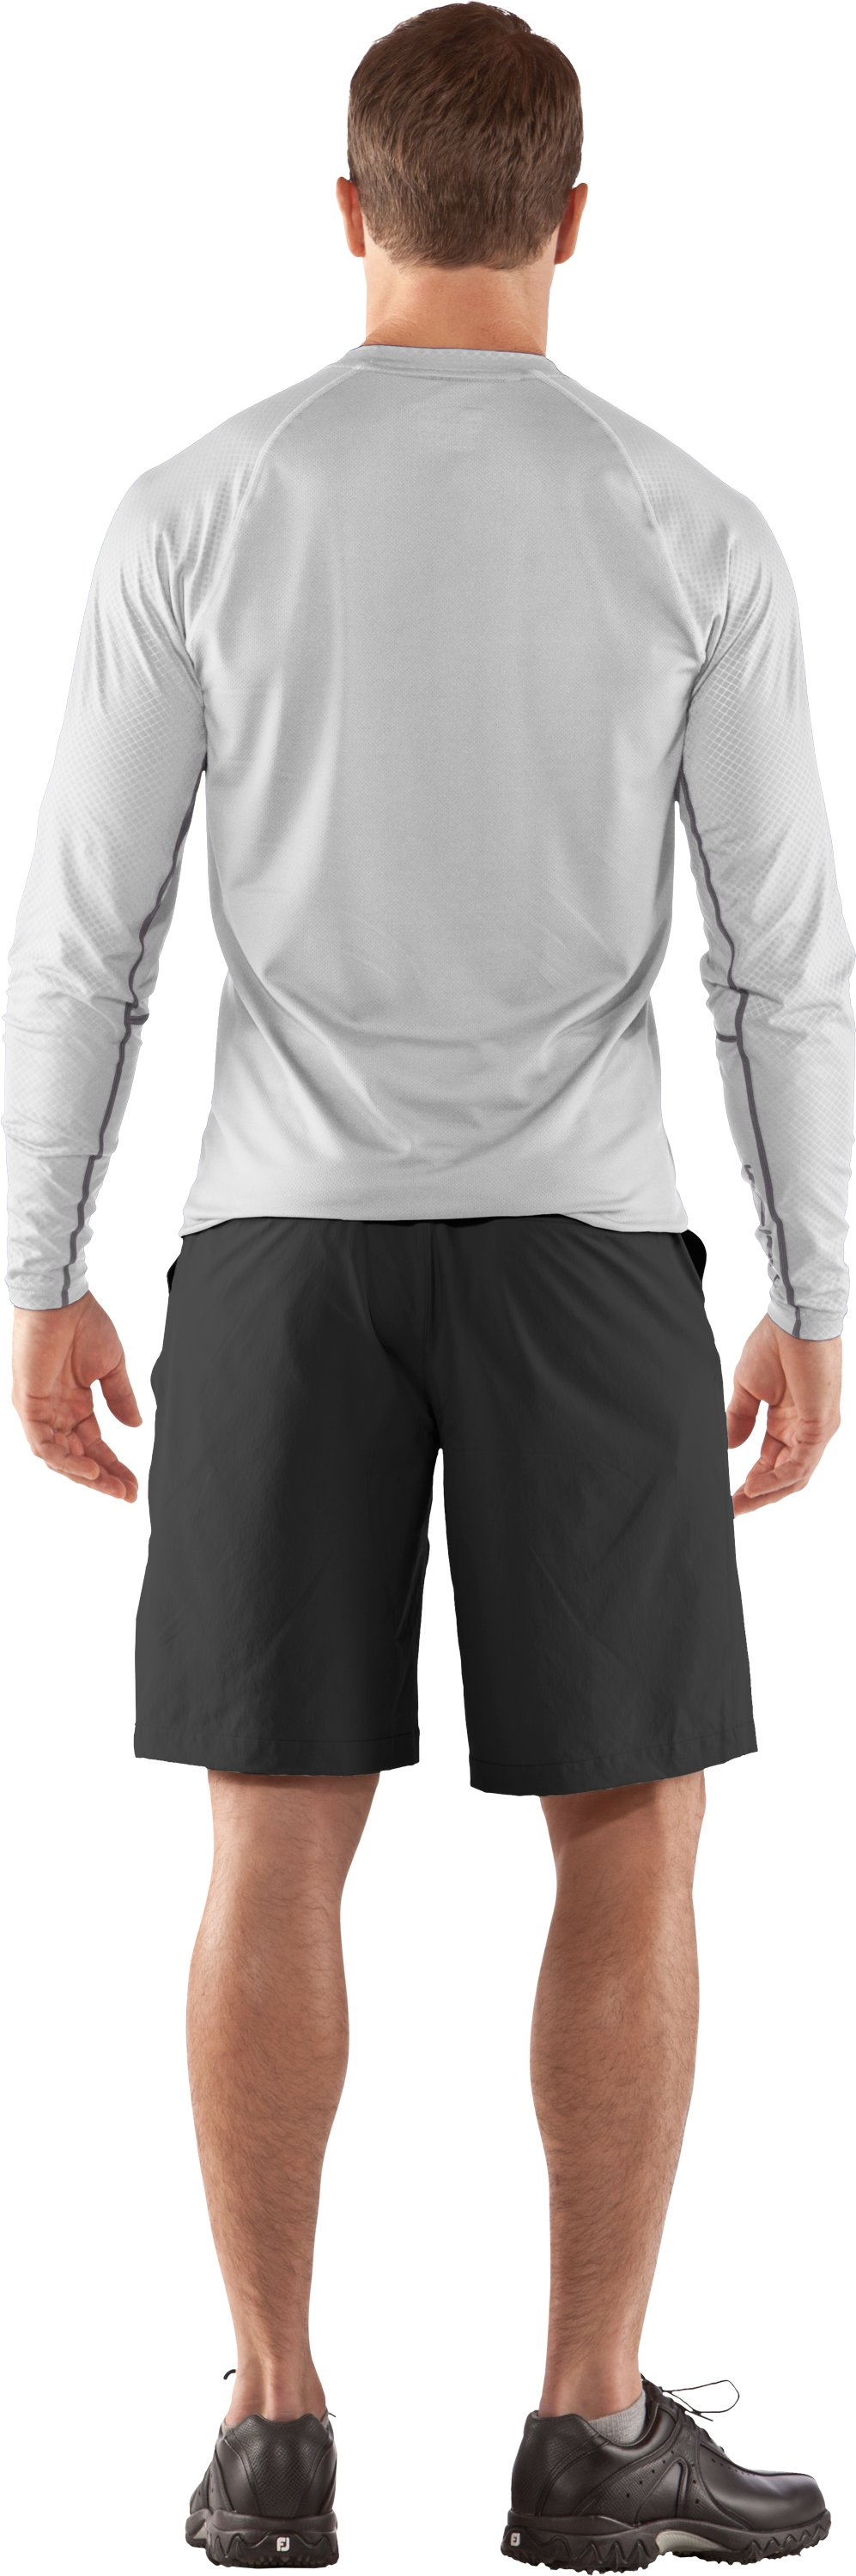 Men's AllSeasonGear® Golf Long Sleeve Shirt, White, Back